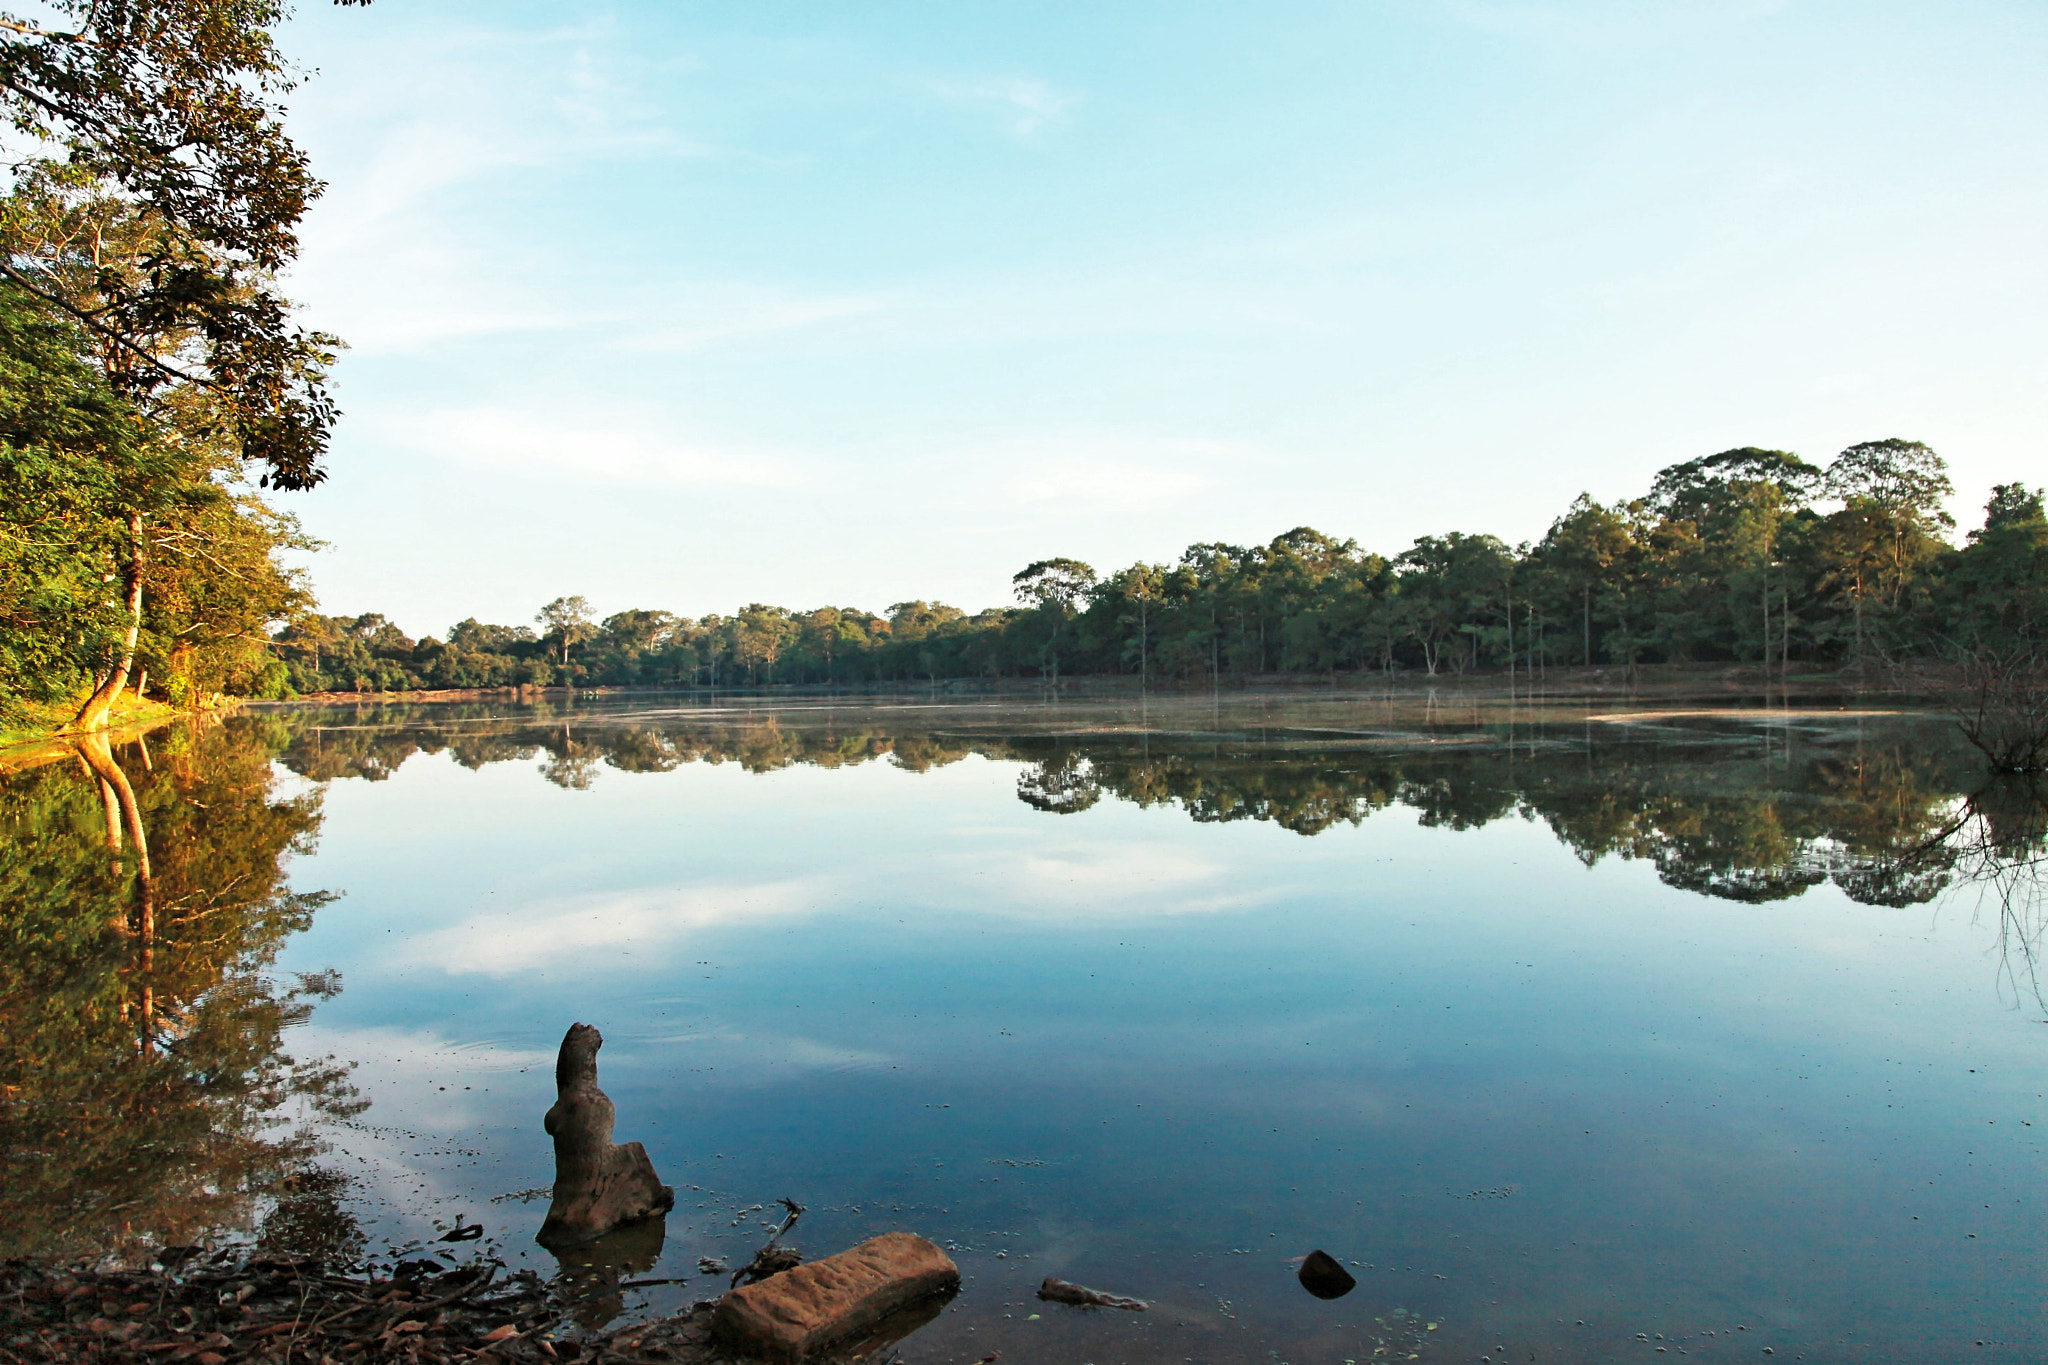 Photograph Morning on the Moat by Mahesh Krishnamurthy on 500px